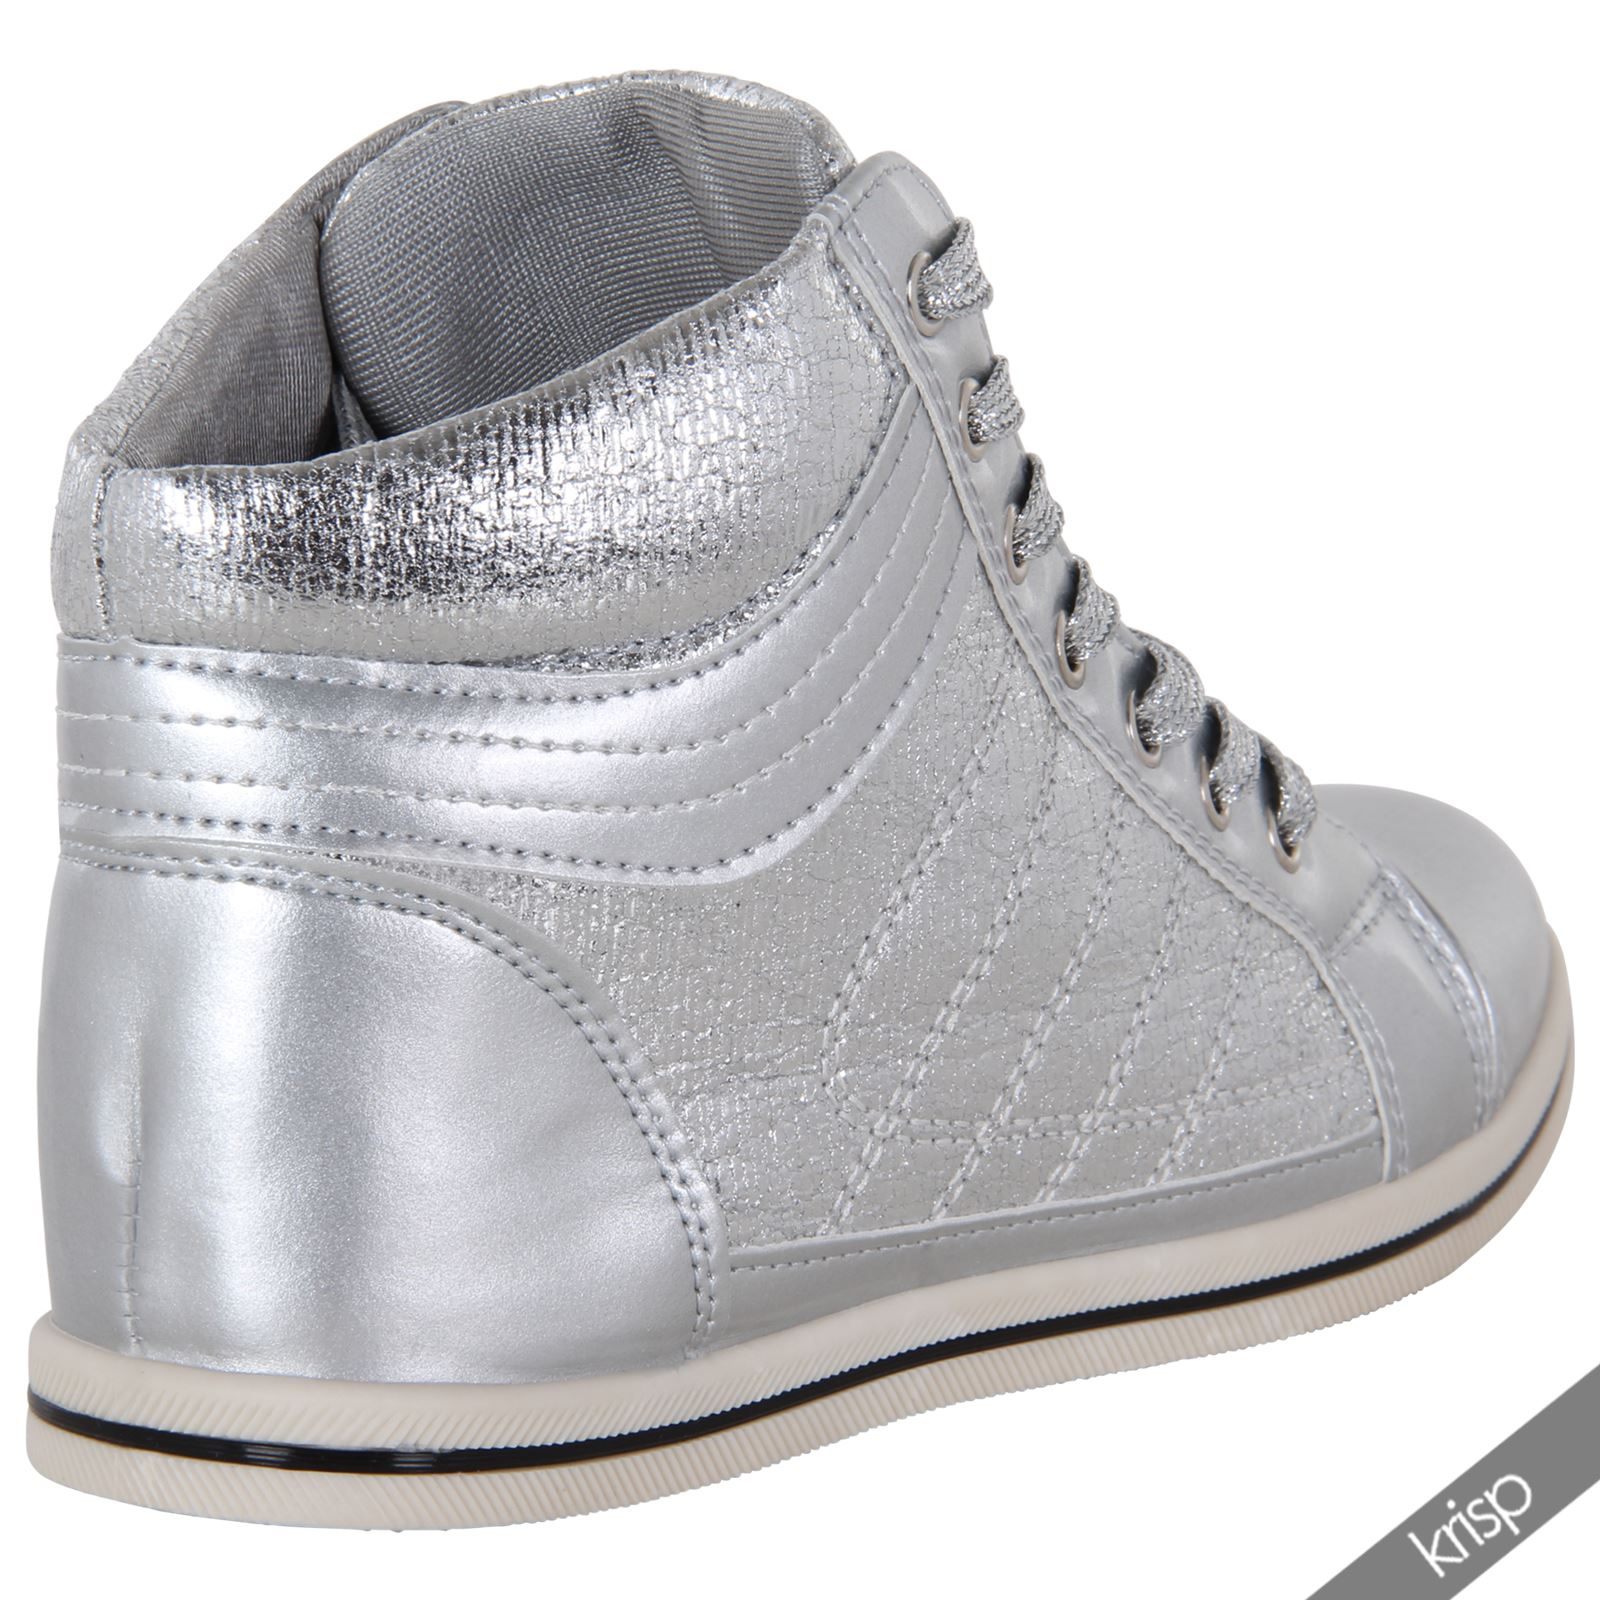 Womens Shiny Patent Leather Metallic Flat Ankle Trainers ...